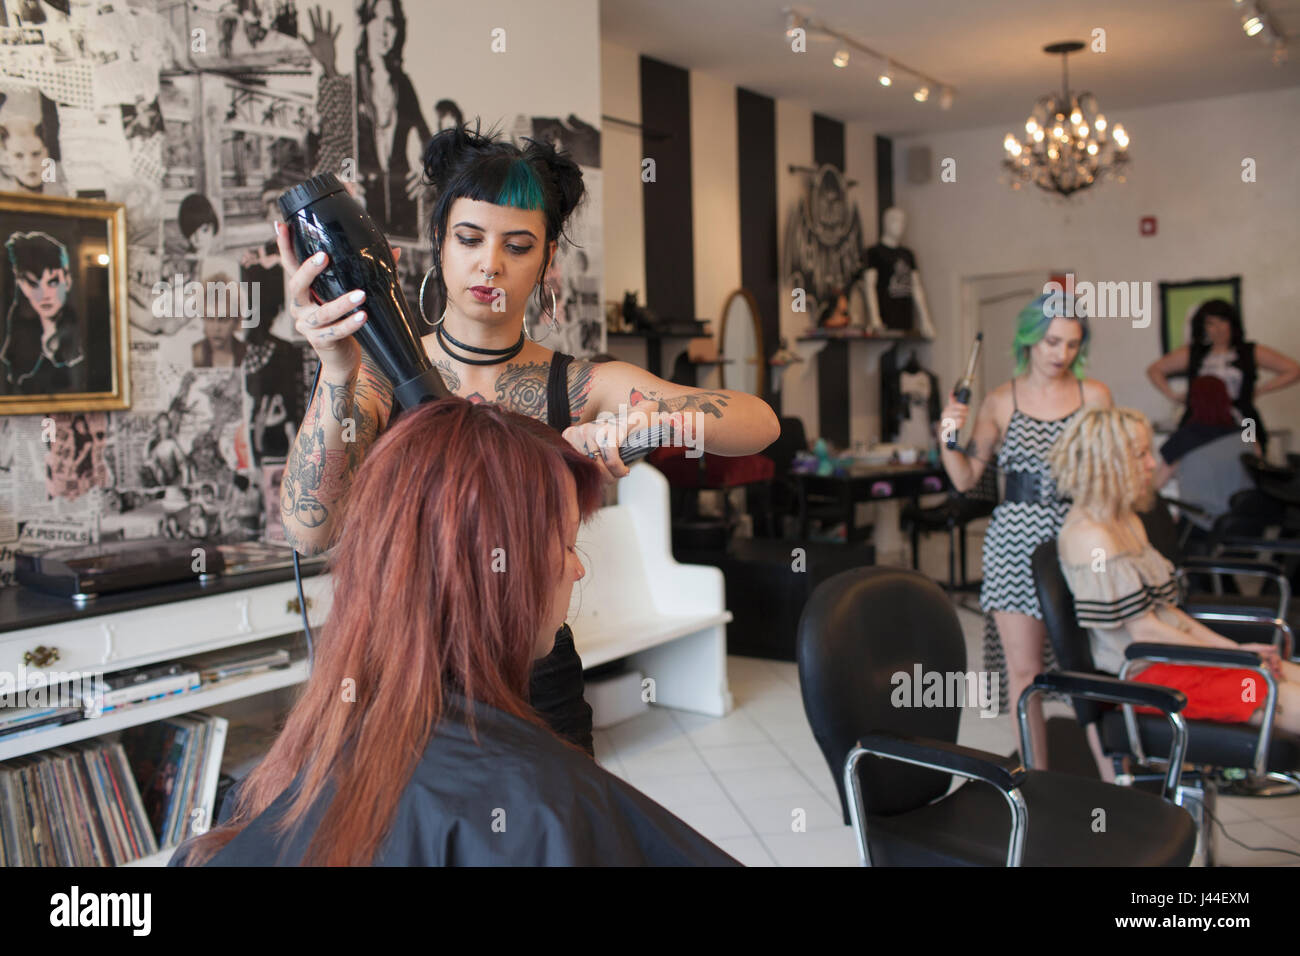 A hair dresser styling a customer's hair. - Stock Image